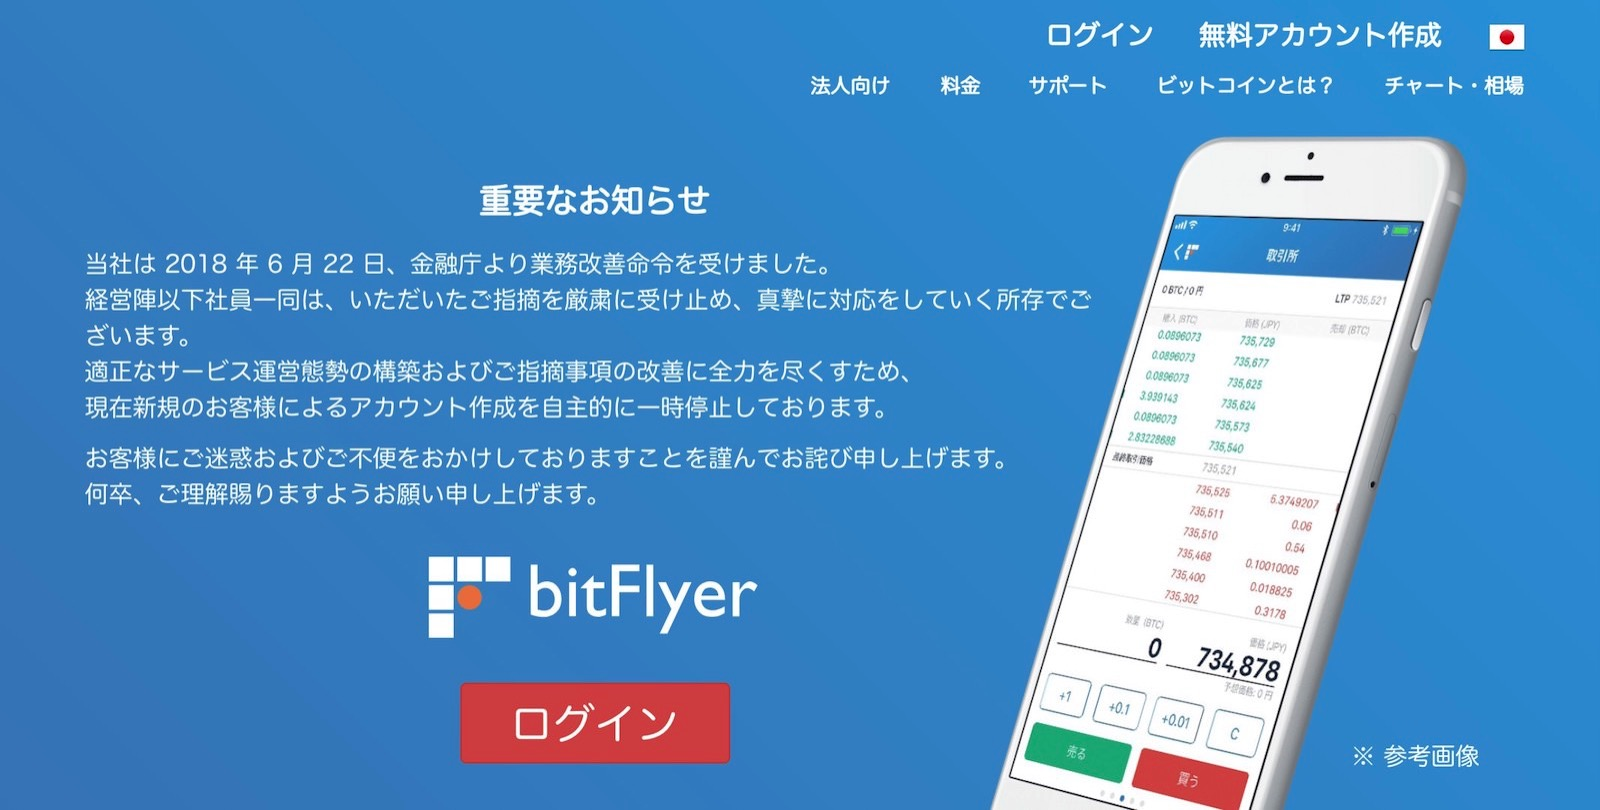 Bitflyer stops adding customers